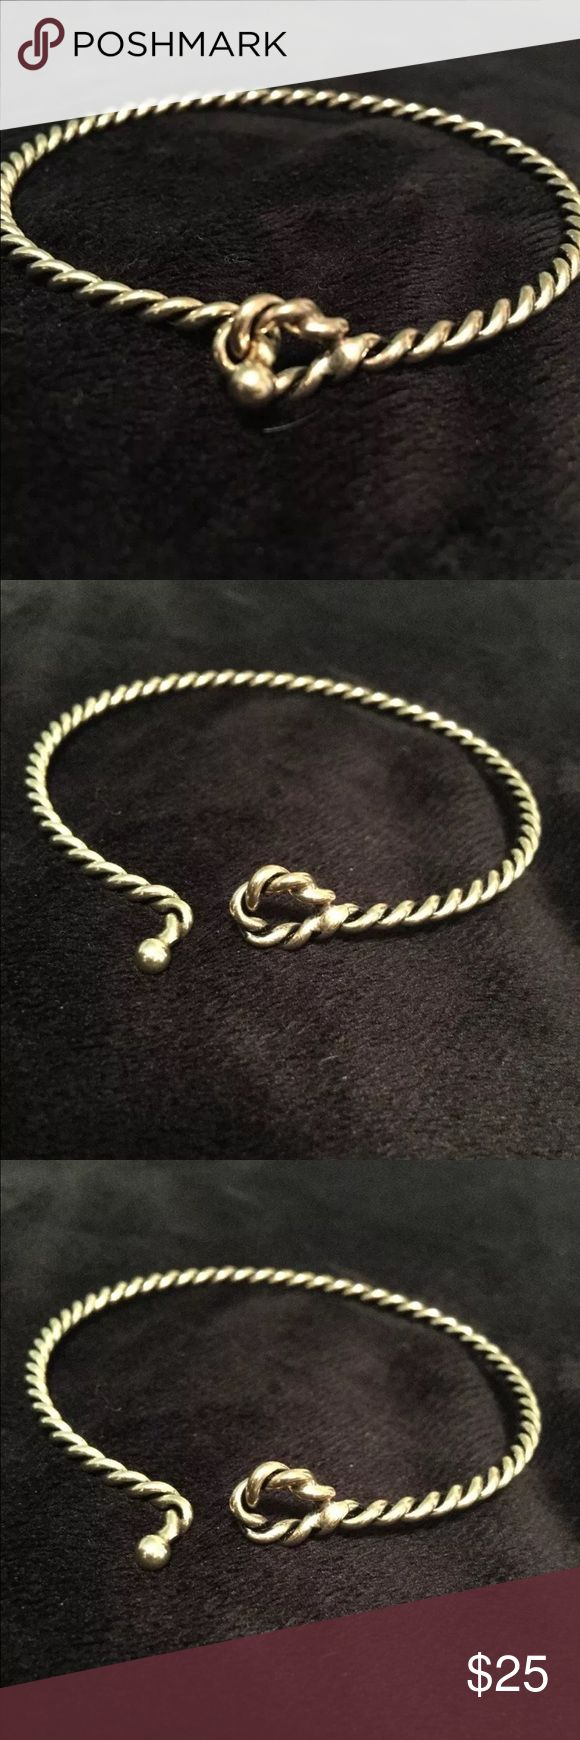 Unique & Classy Gold twisted bangle bracelet! A  simple, high quality hand twisted bangle in solid gold wire. This bangle is made of heavy wire hammered to create striking facets and hand shaped. A great gift for that special lady, bridesmaids, best friend, mom, sister, daughter, aunt and teacher! These are so versatile, wear them with casual or formal wear! Jewelry Bracelets